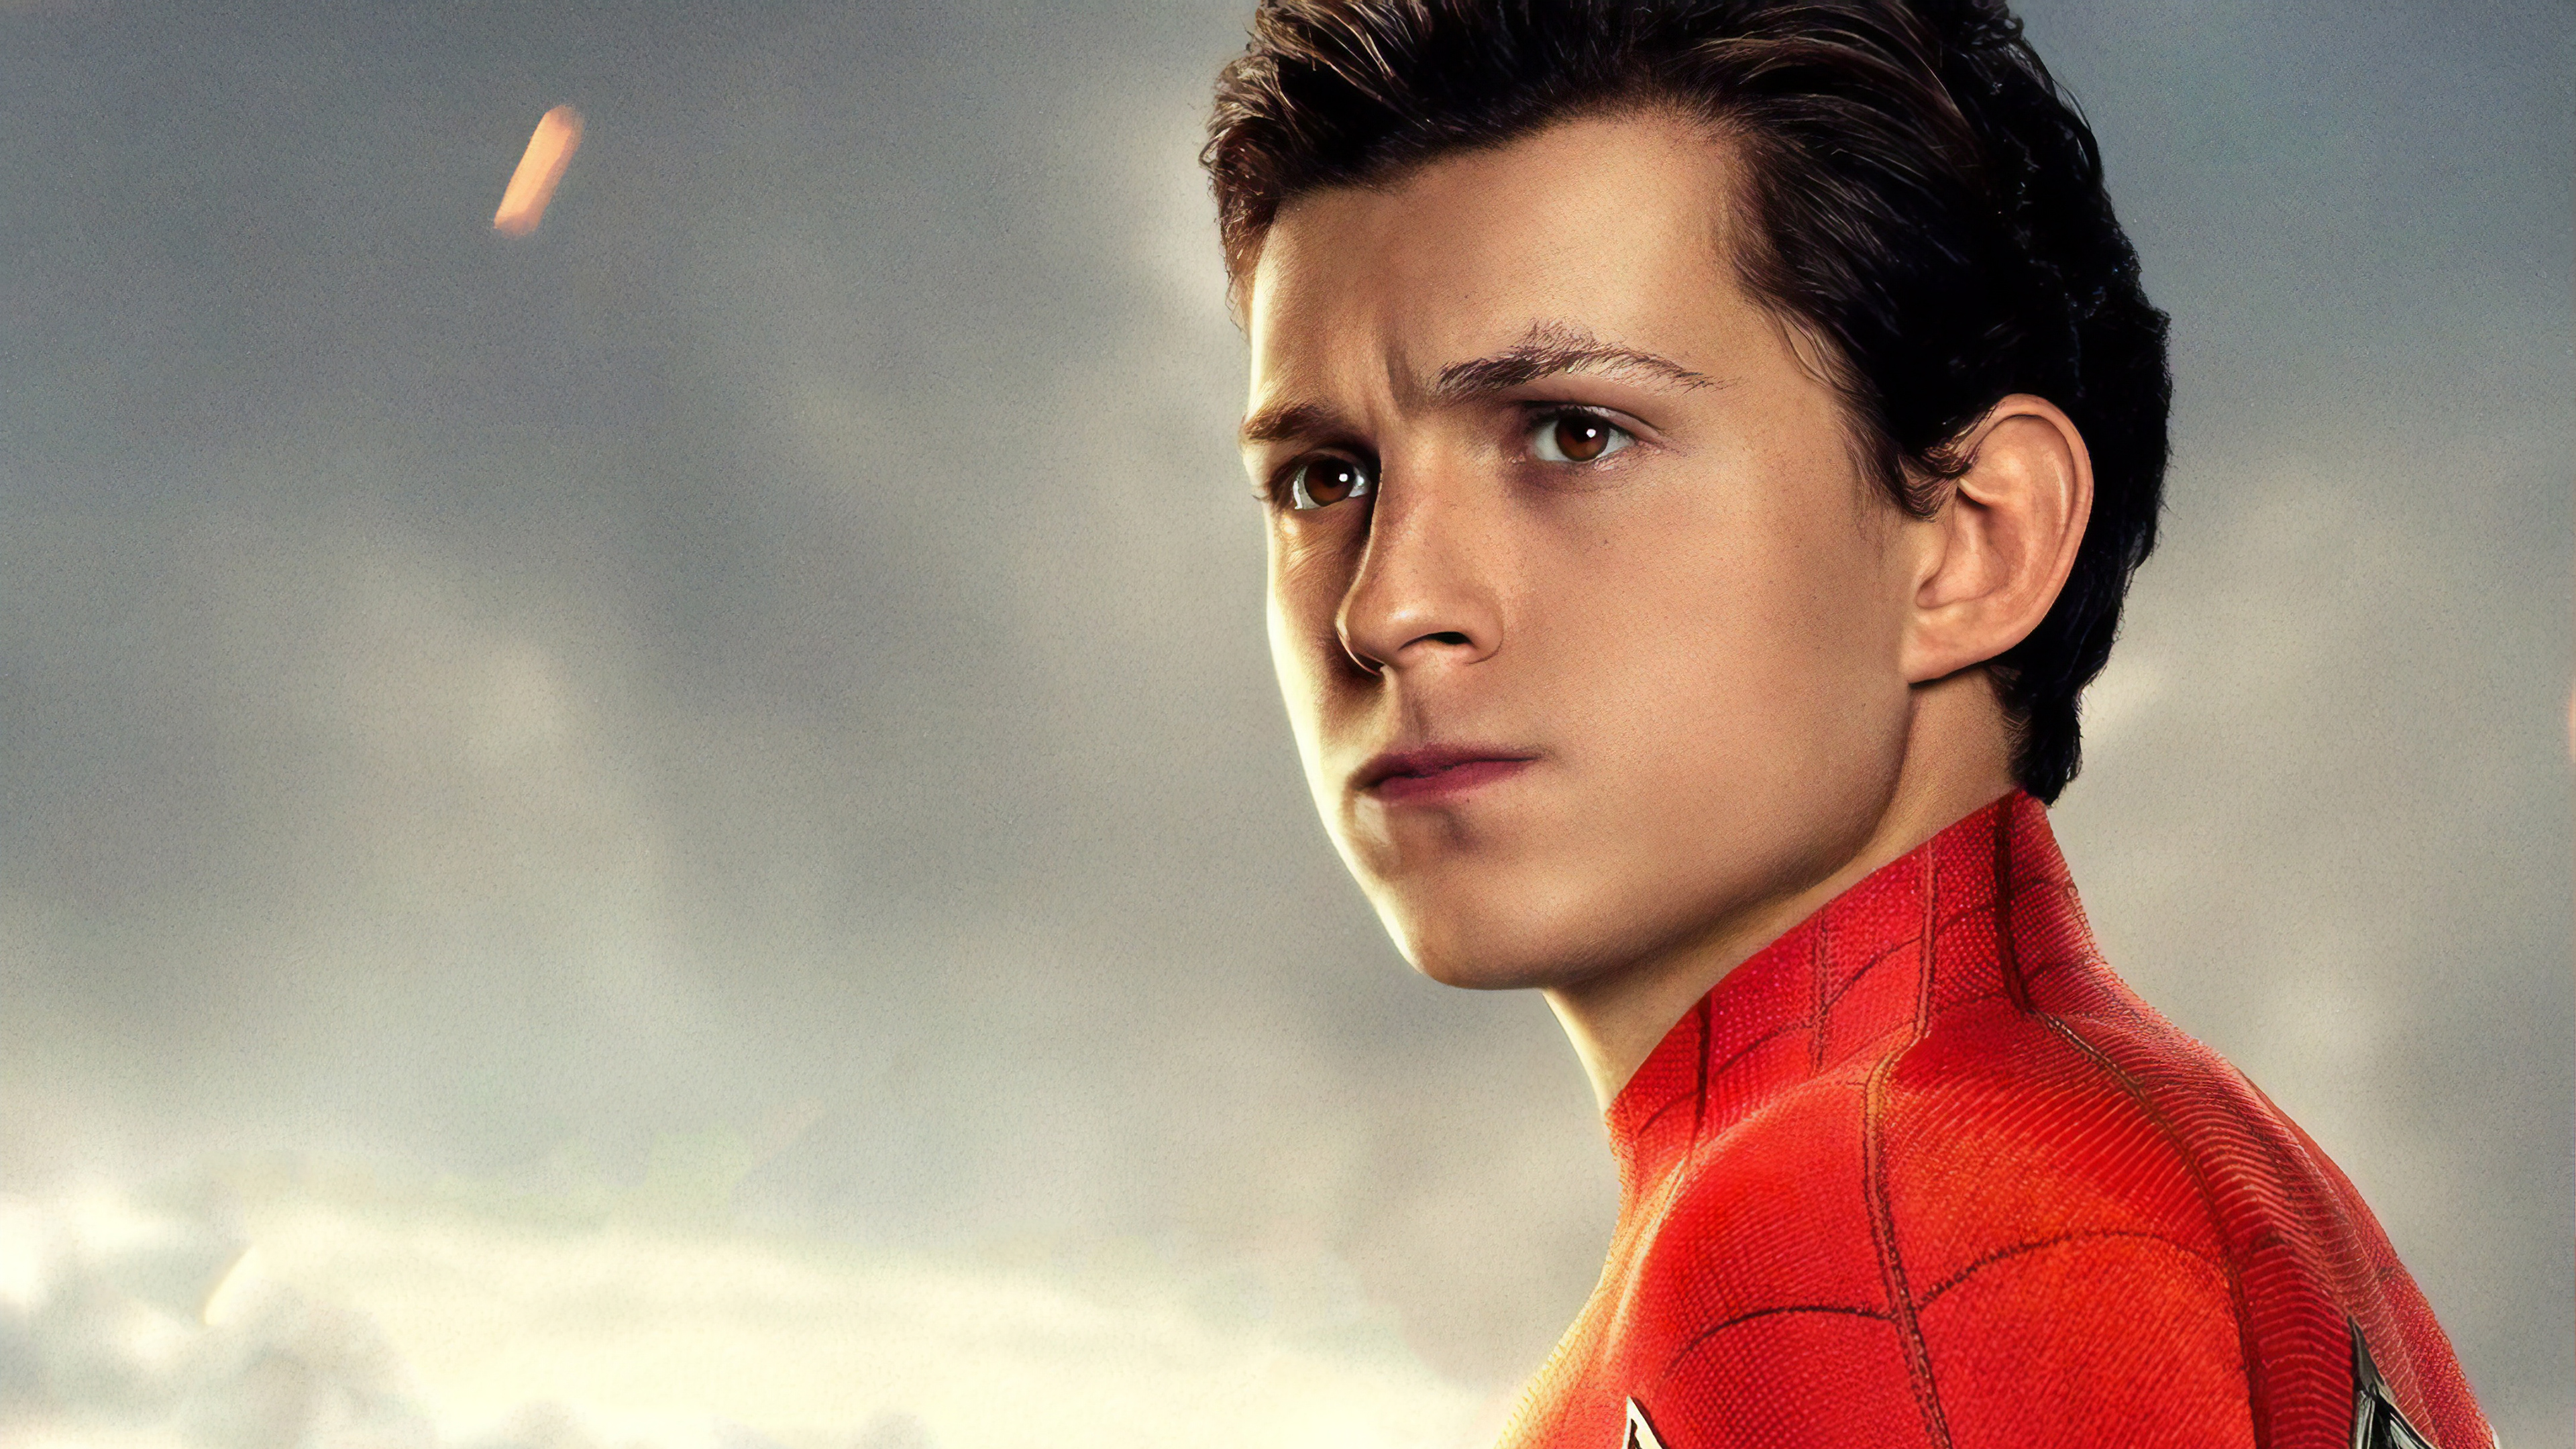 Spider-Man 3 Release Date, Trailer, Cast, Plot Spoilers, Title, New Villains and Avengers Connection